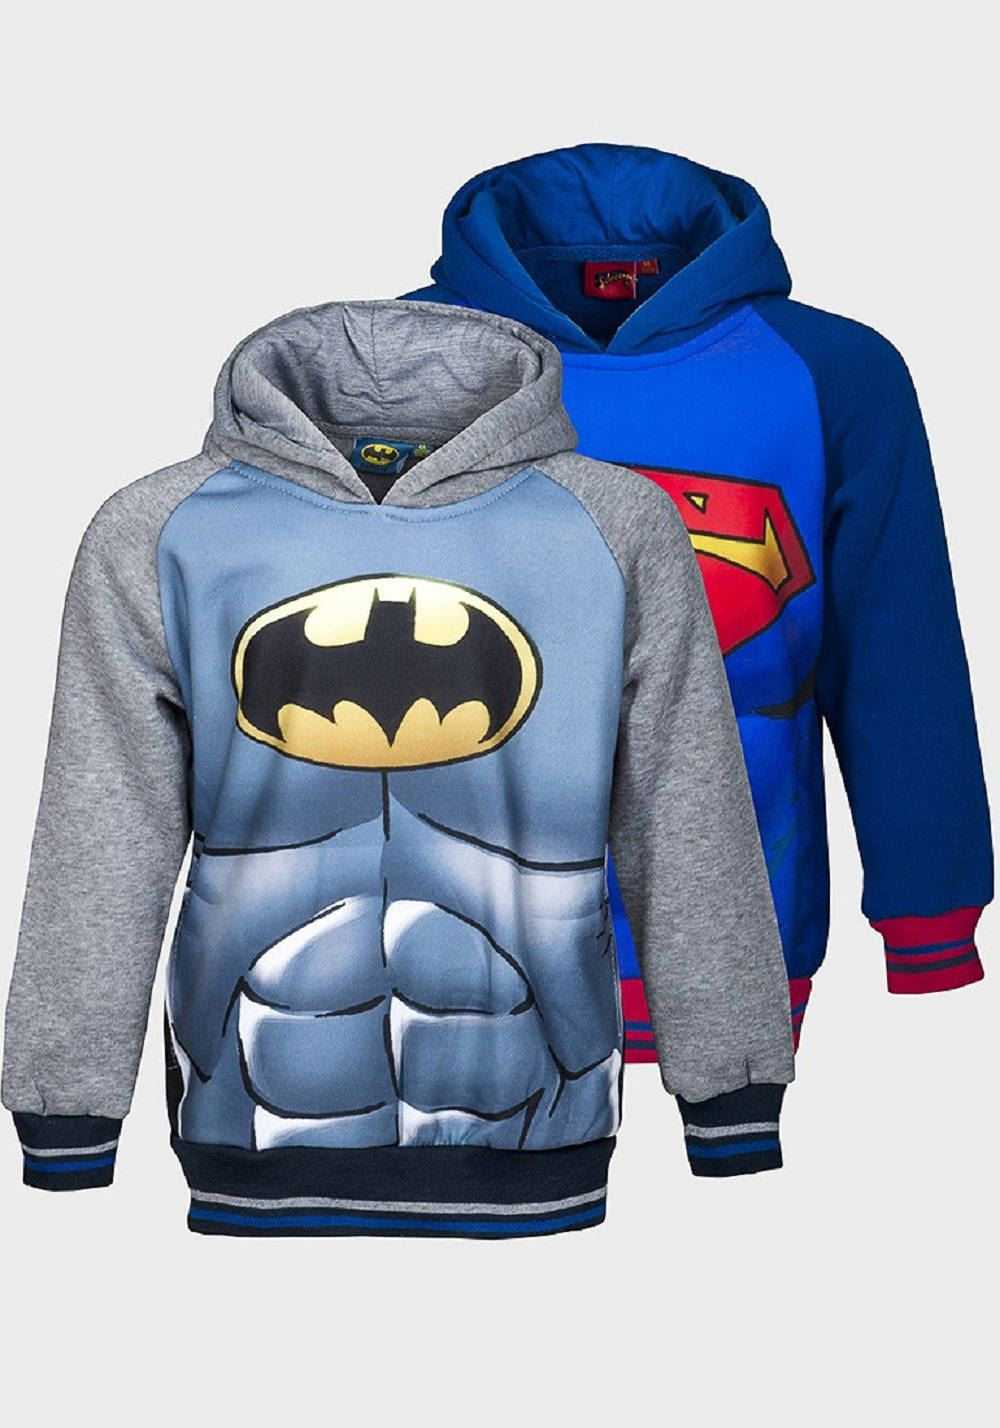 SUPERMAN HOODIE//SWEATSHIRT-FULL SLEEVED-FLEECED-REDUCED TO CLEAR-NEW WITHOUT TAG